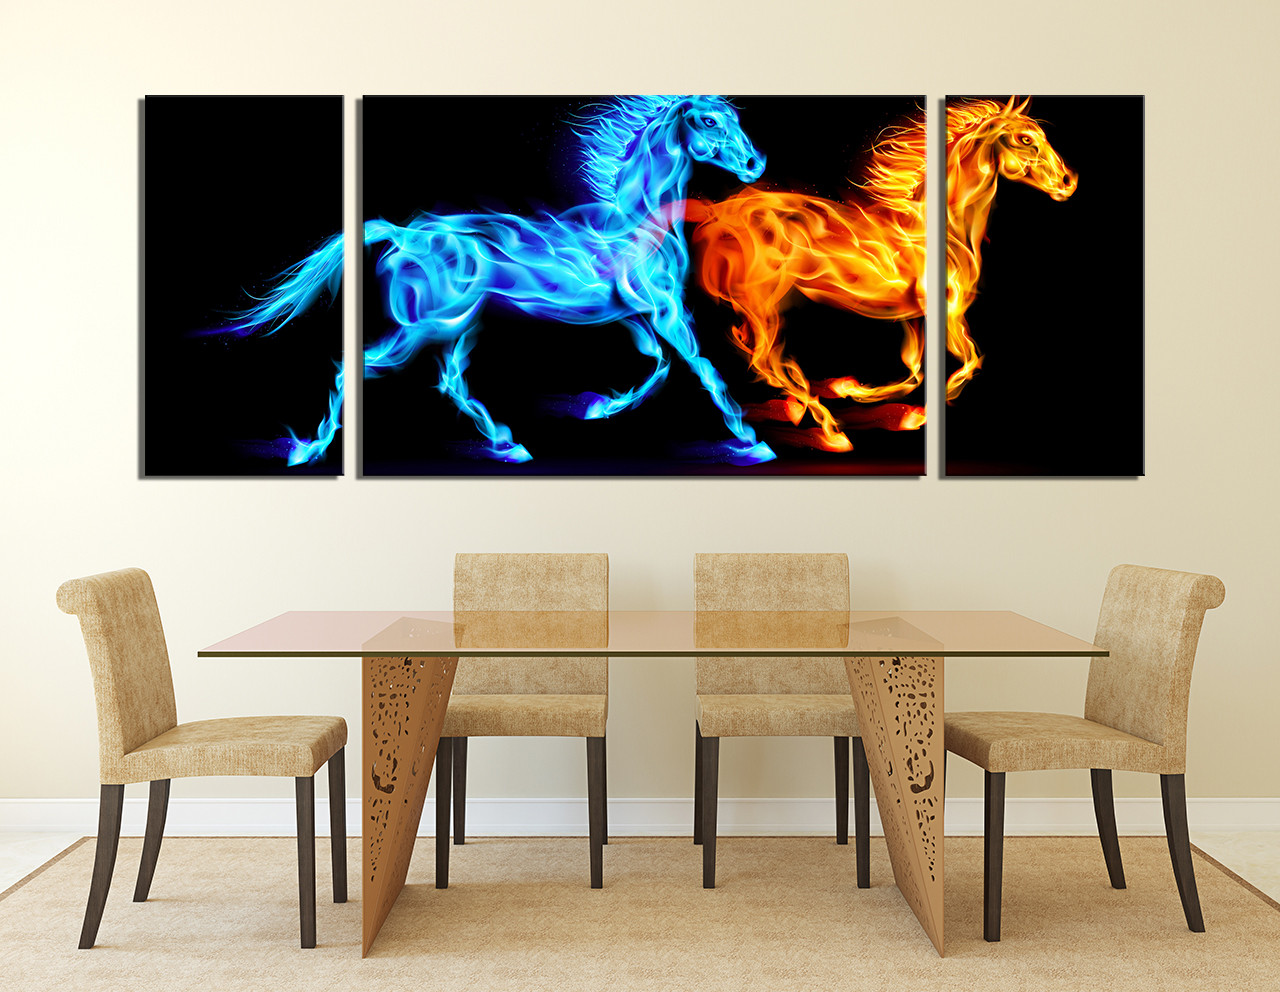 Dining Room Artwork 3 Piece Huge Canvas Print Blue Photo Canvas Horse Wall Decor